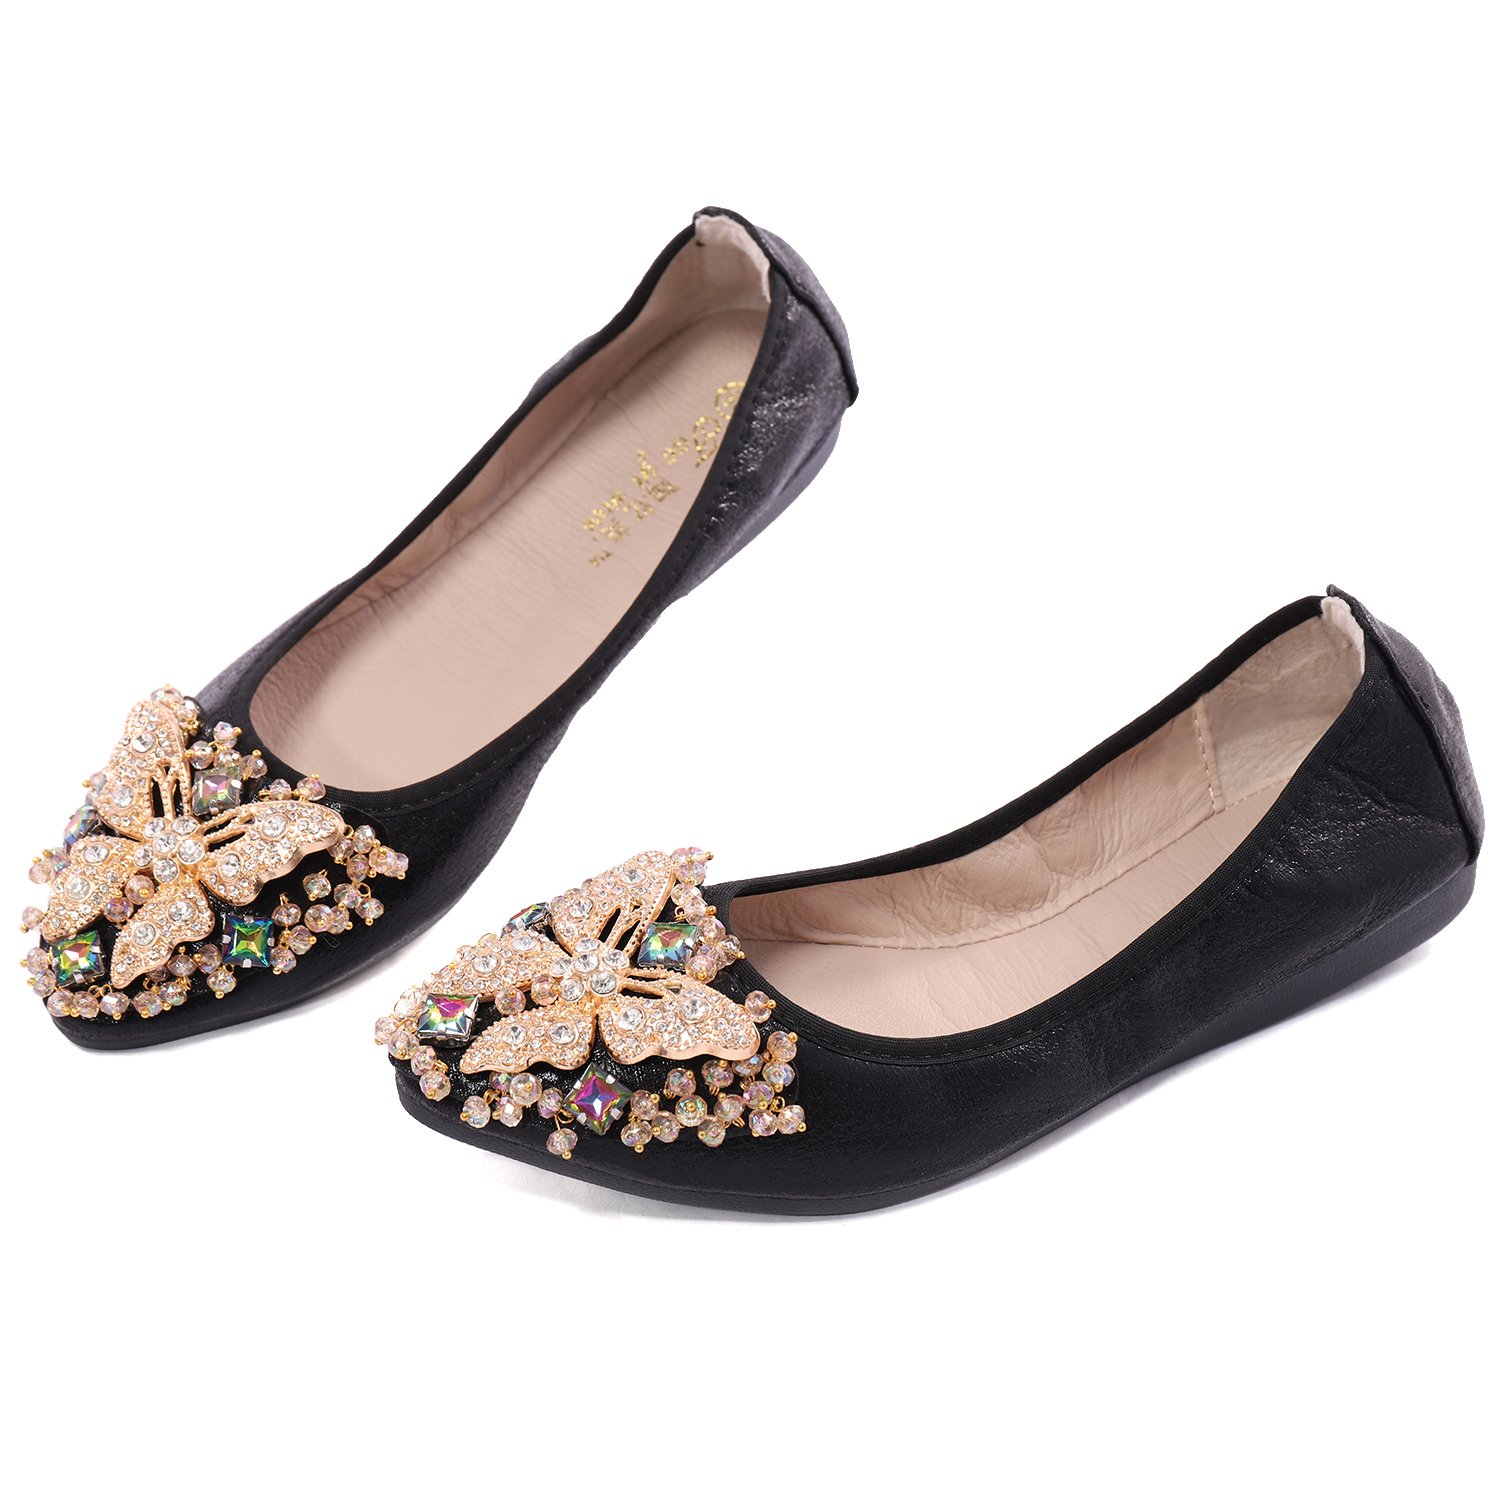 Cattle Shop Womens Foldable Soft Ballet Flats Bling Rhinestone Comfort Slip On Loafers Walking Shoes by Cattle Shop (Image #2)